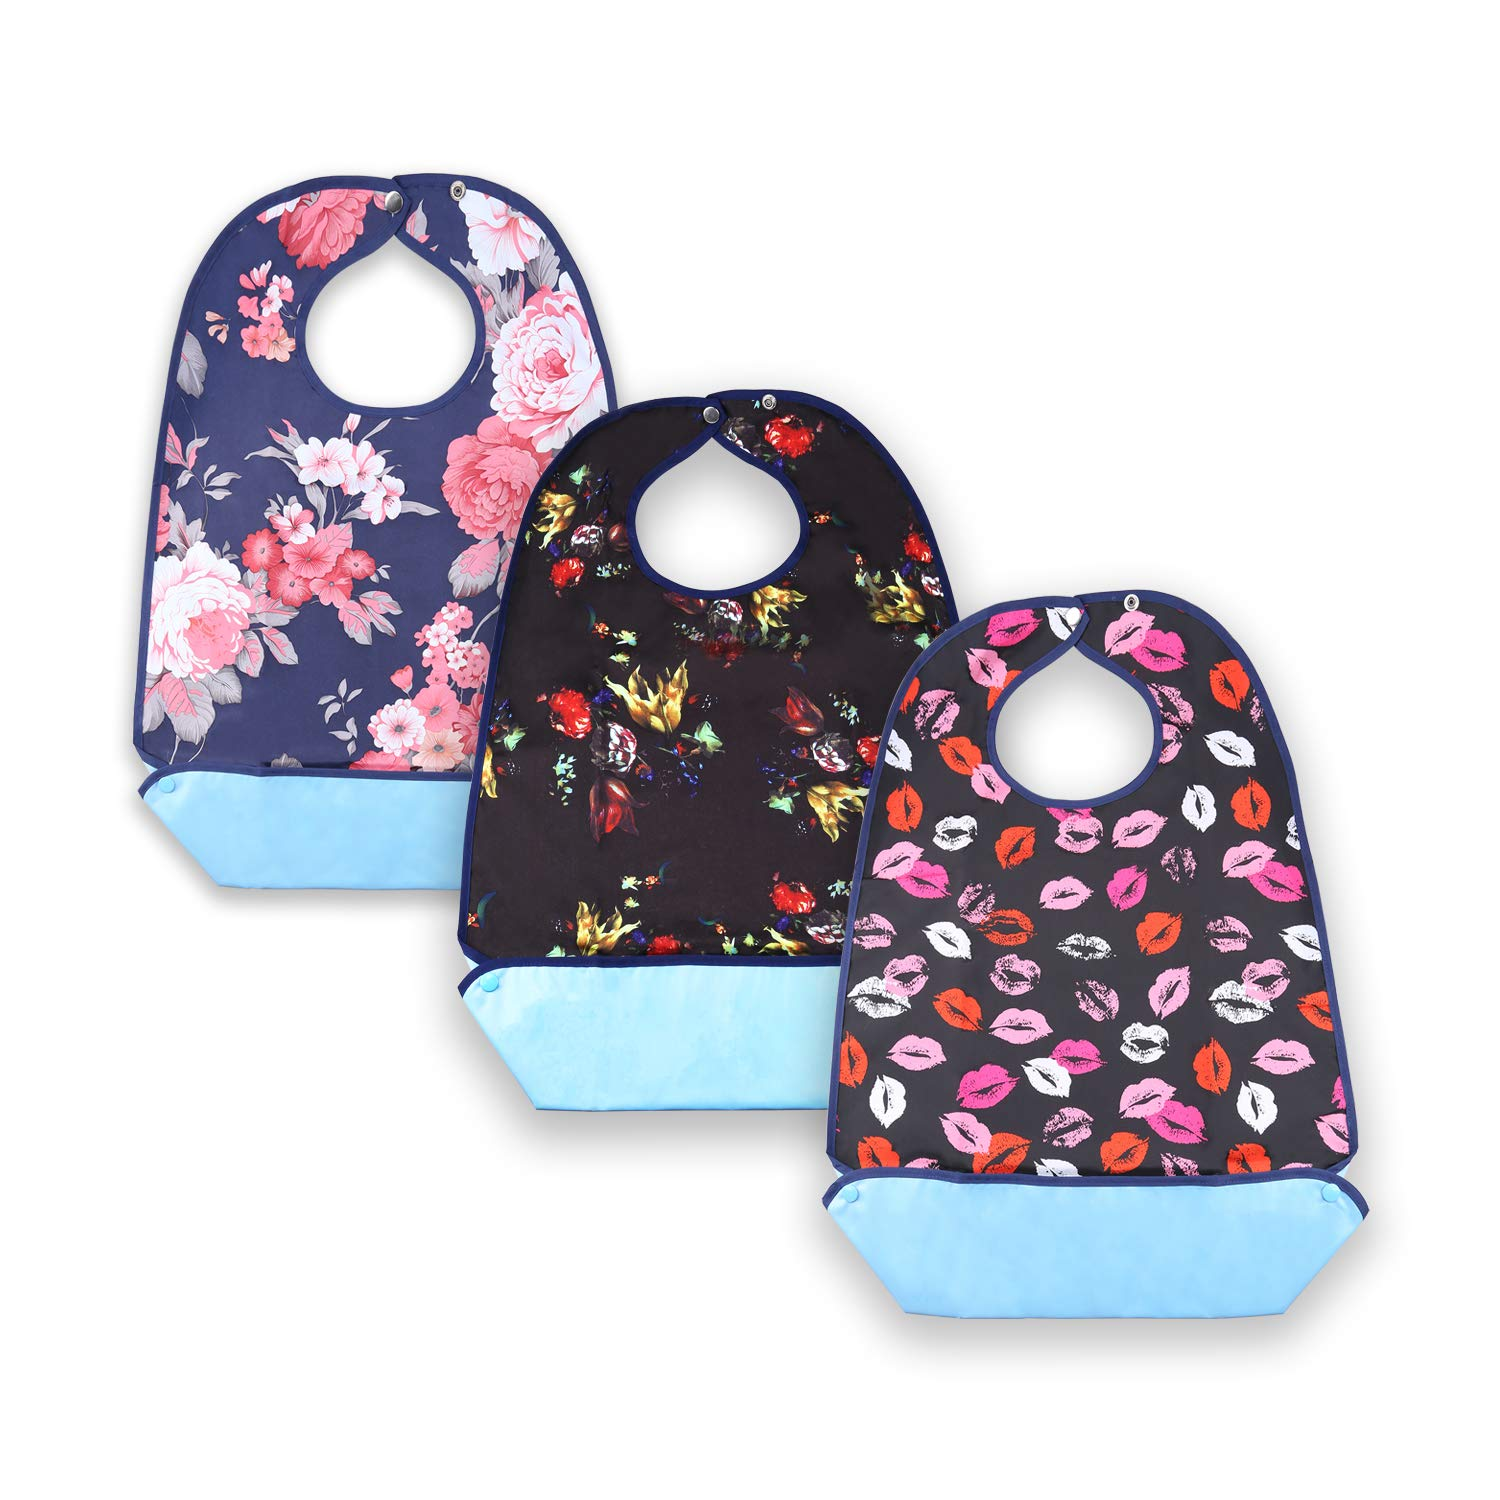 Women's Waterproof Adult Bibs for Eating, Washable Resuable Elder Clothing Protector Set with Vinyl Backing, Large Crumb Catcher and Adjustable Snap Closure (3 Pack)